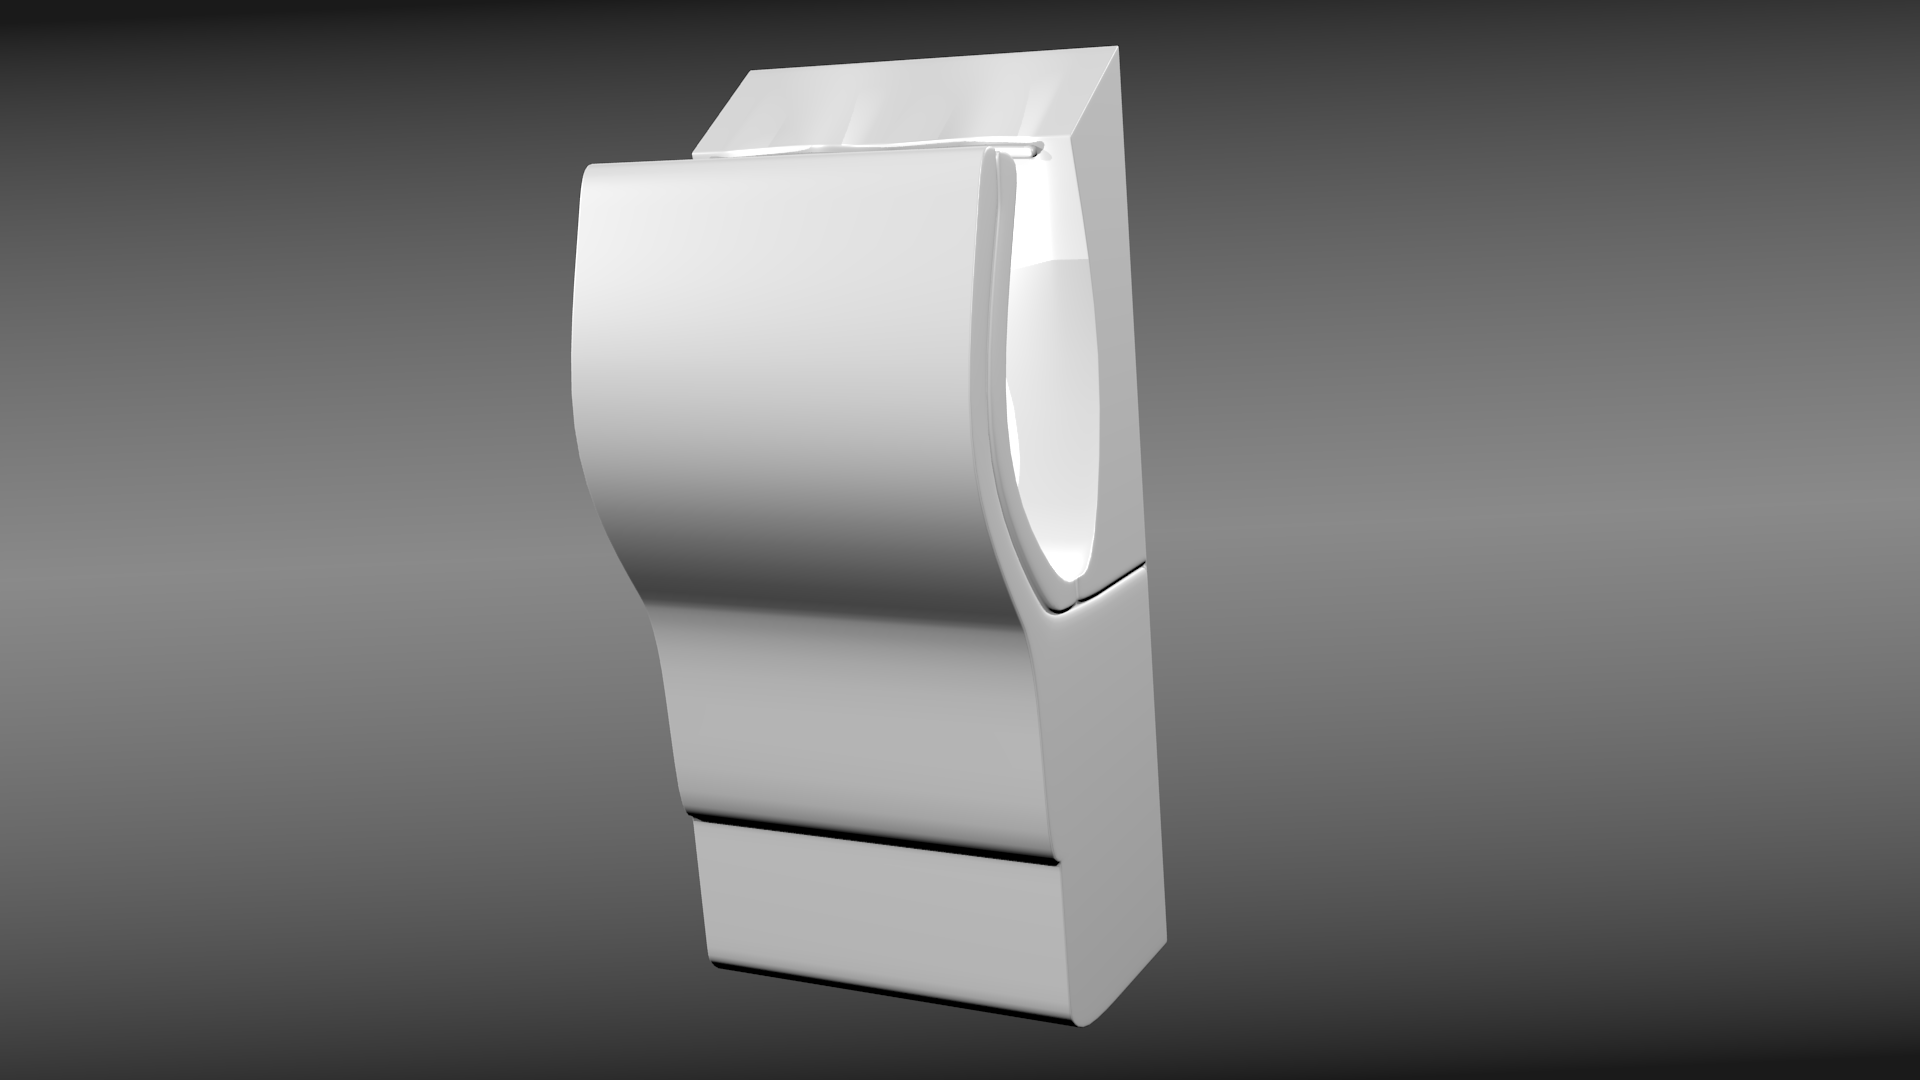 dyson airblade 3d model